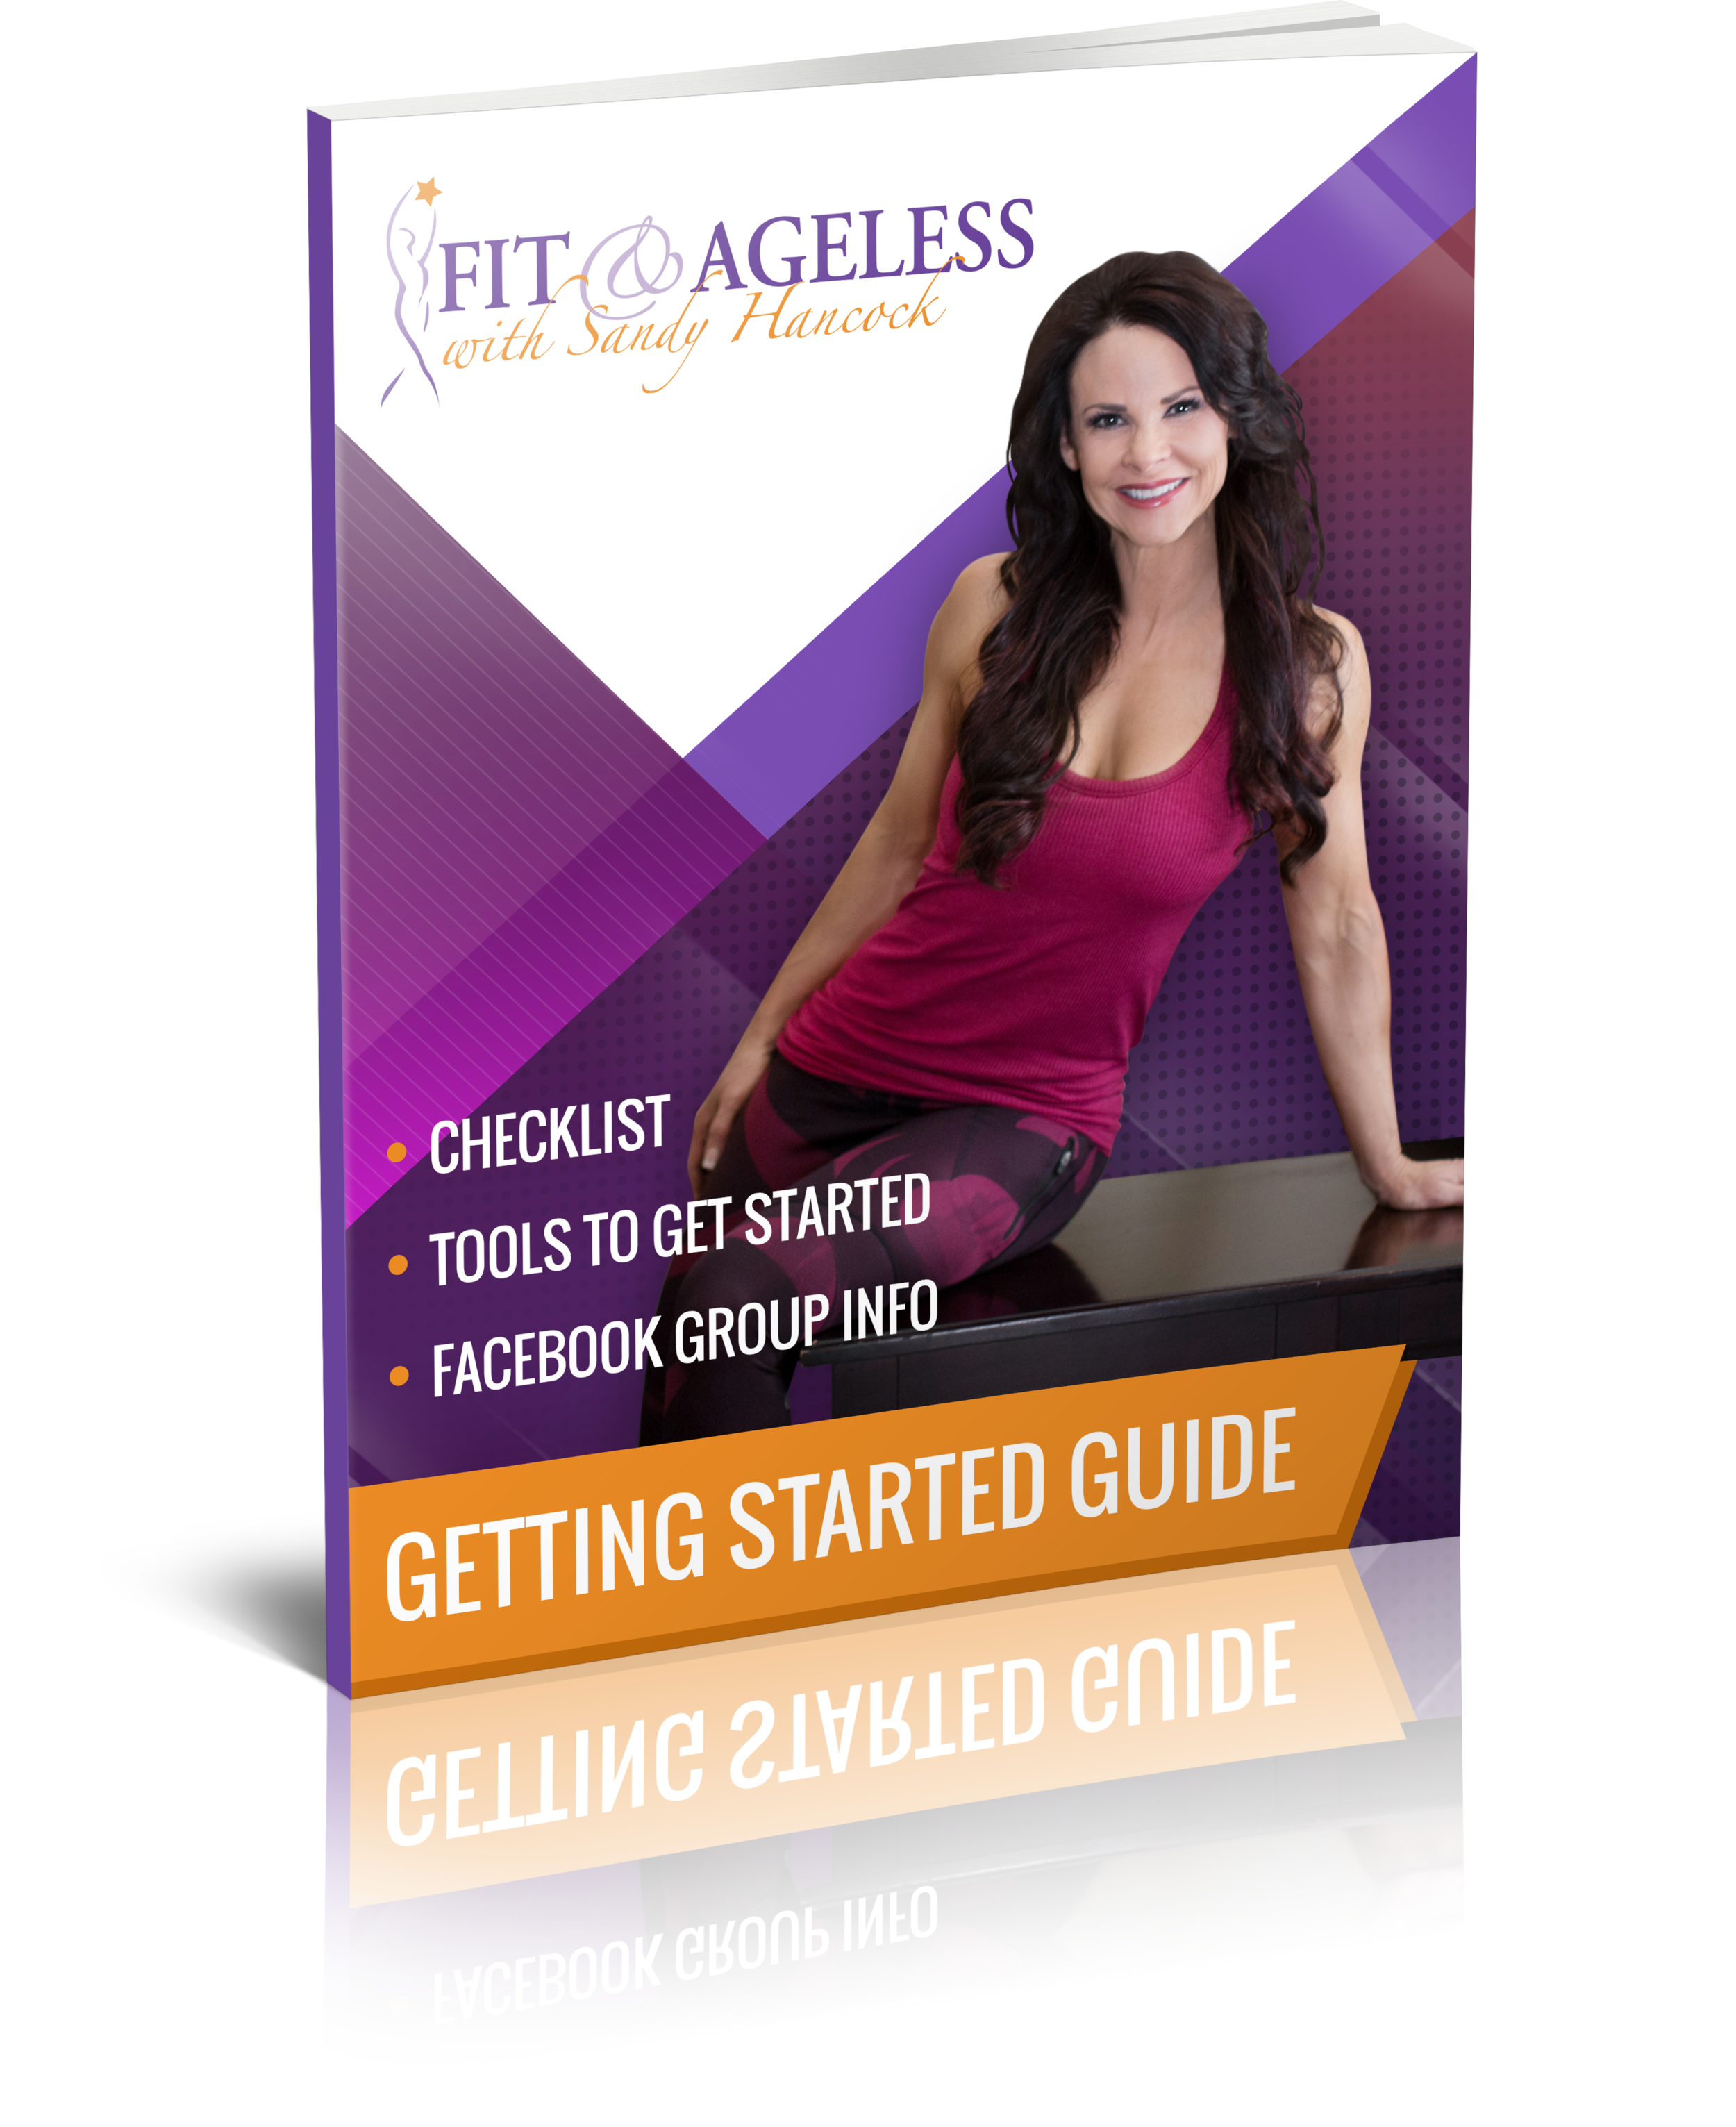 Fit & Ageless - Getting Started